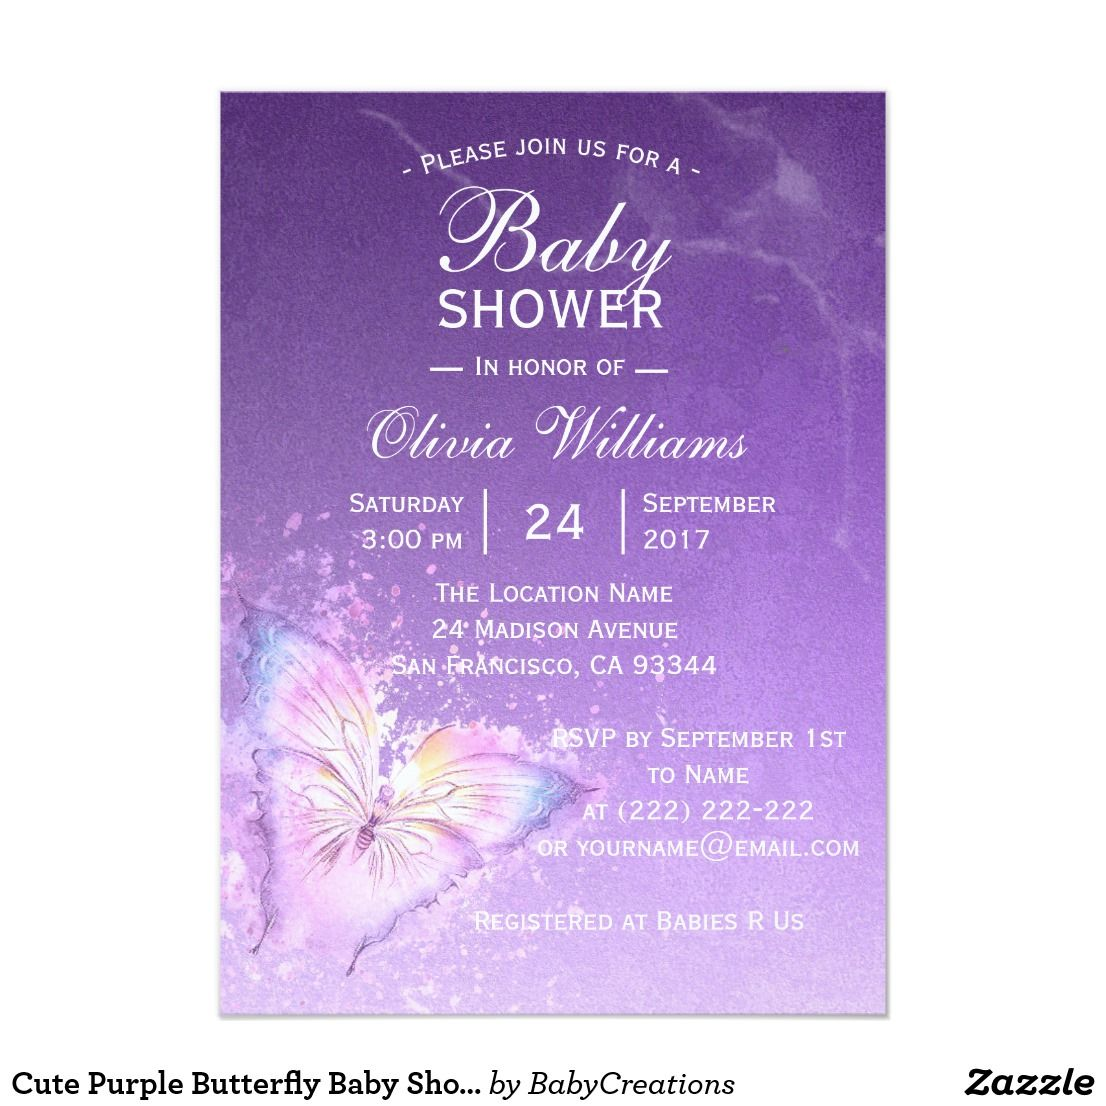 Cute Purple Butterfly Baby Shower Templates | Baby shower templates ...